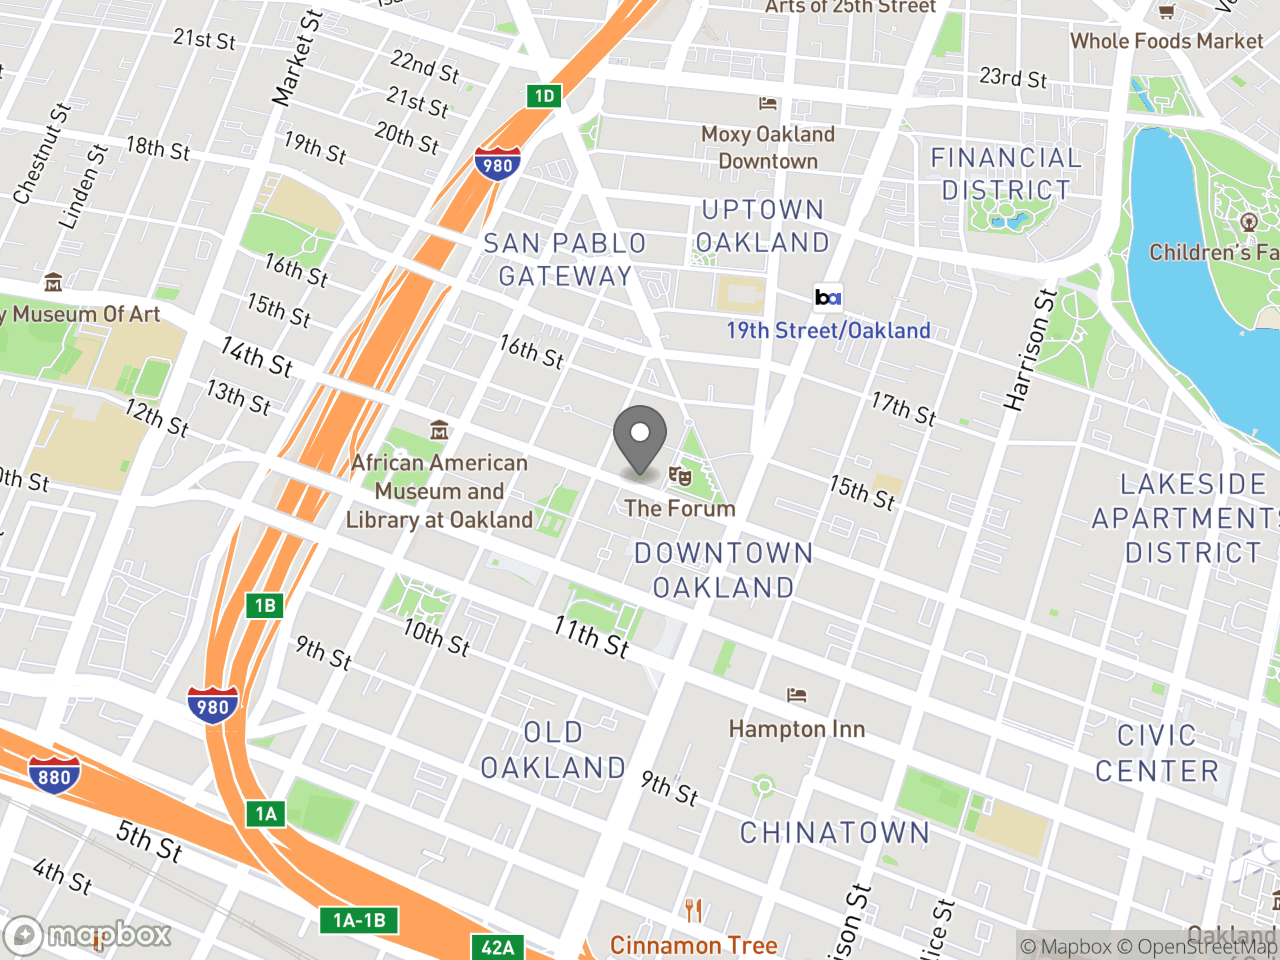 Map location for Mayor's Commission on Persons with Disabilities, March 18, 2019, located at 1 Frank H Ogawa Plaza in Oakland, CA 94612